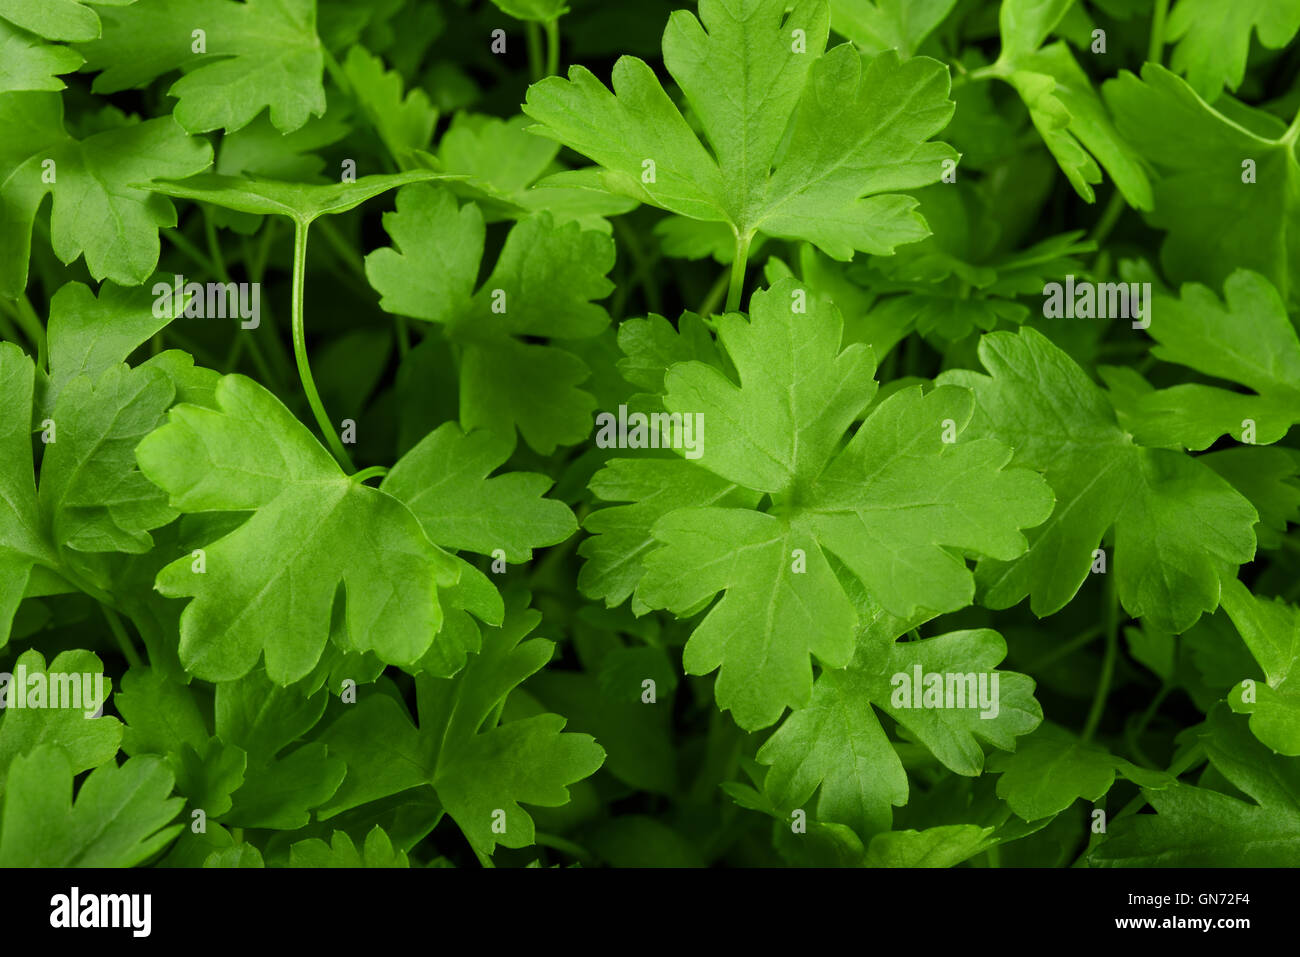 background of fresh green parsley - Stock Image